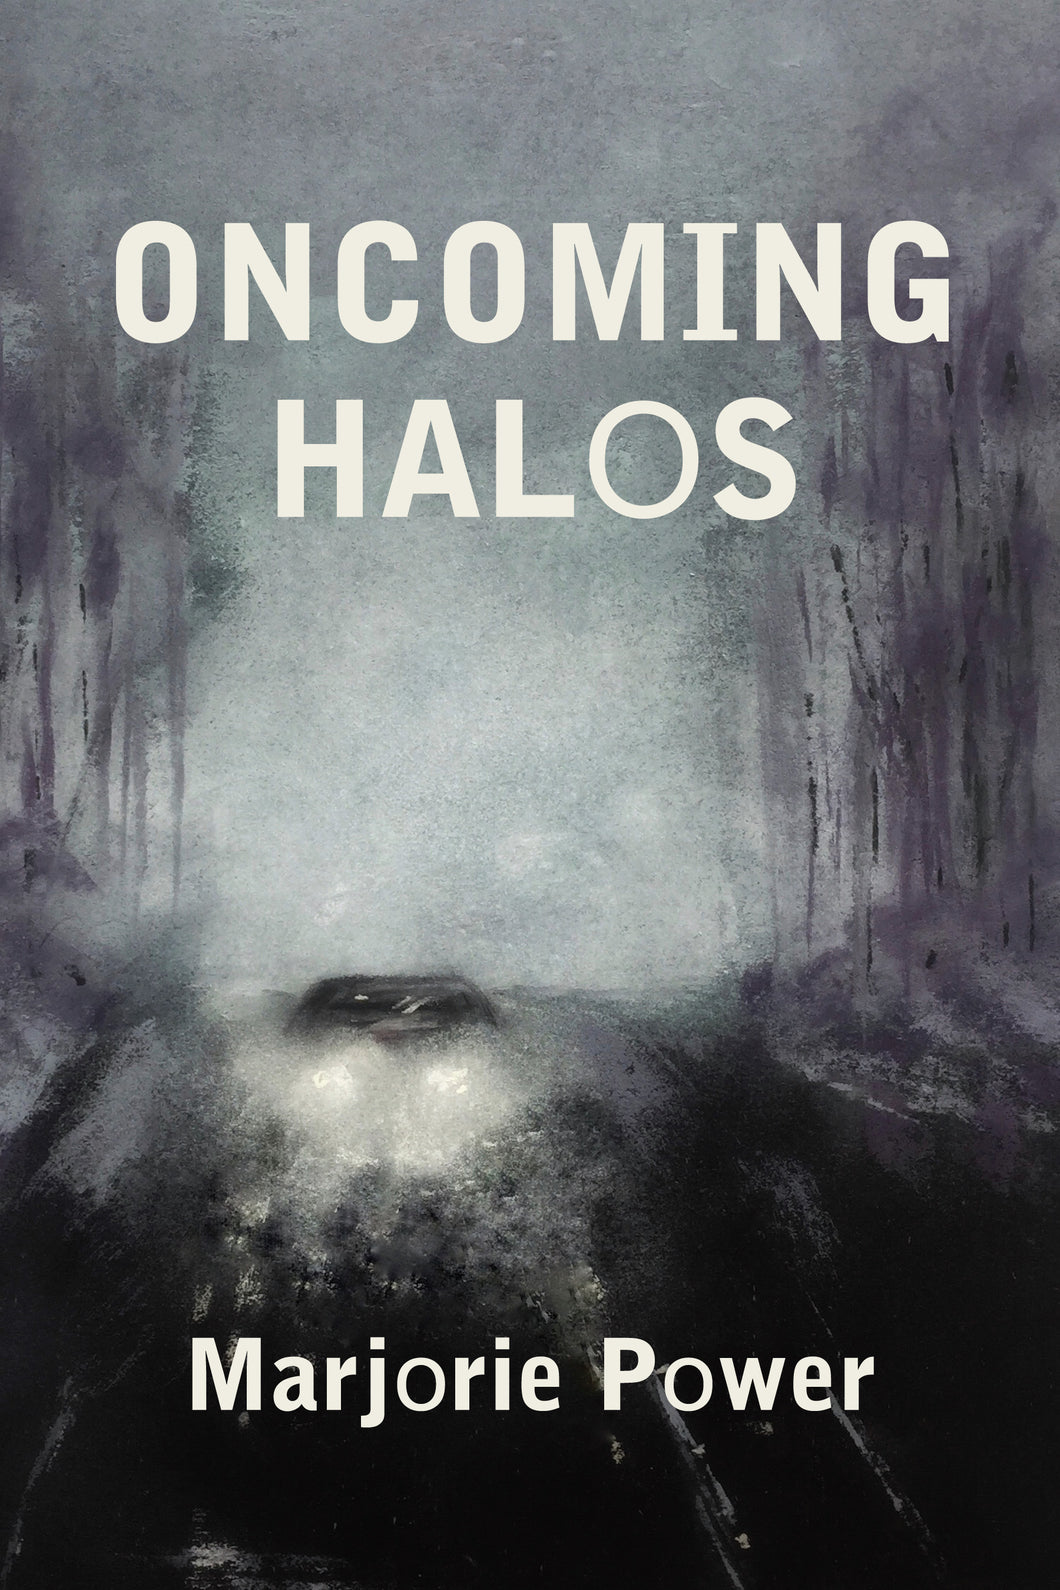 Oncoming Halos